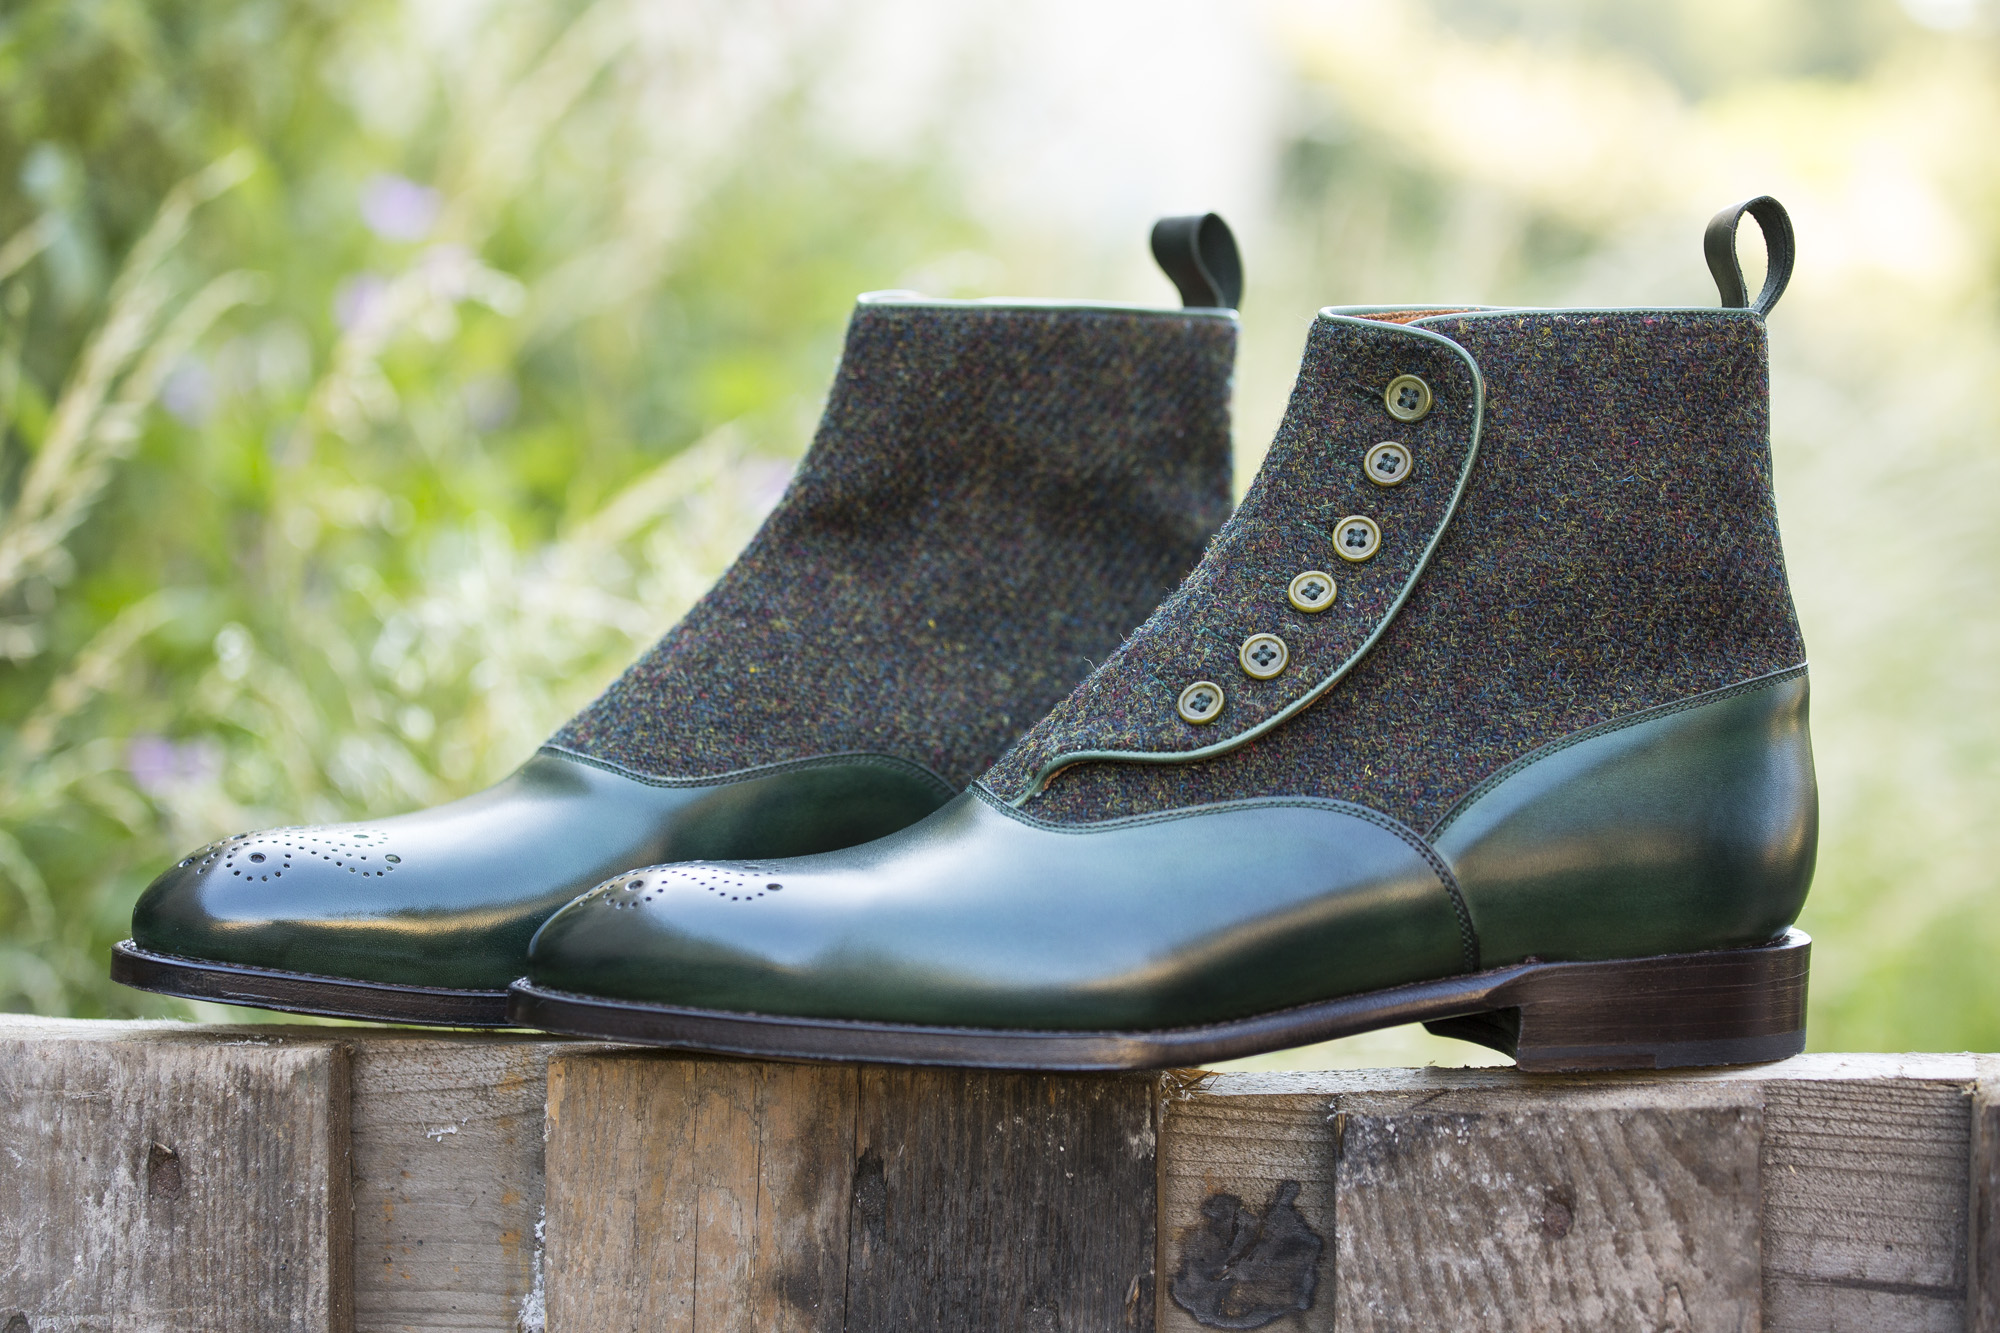 j-fitzpatrick-footwear-collection-july-19-hero-382